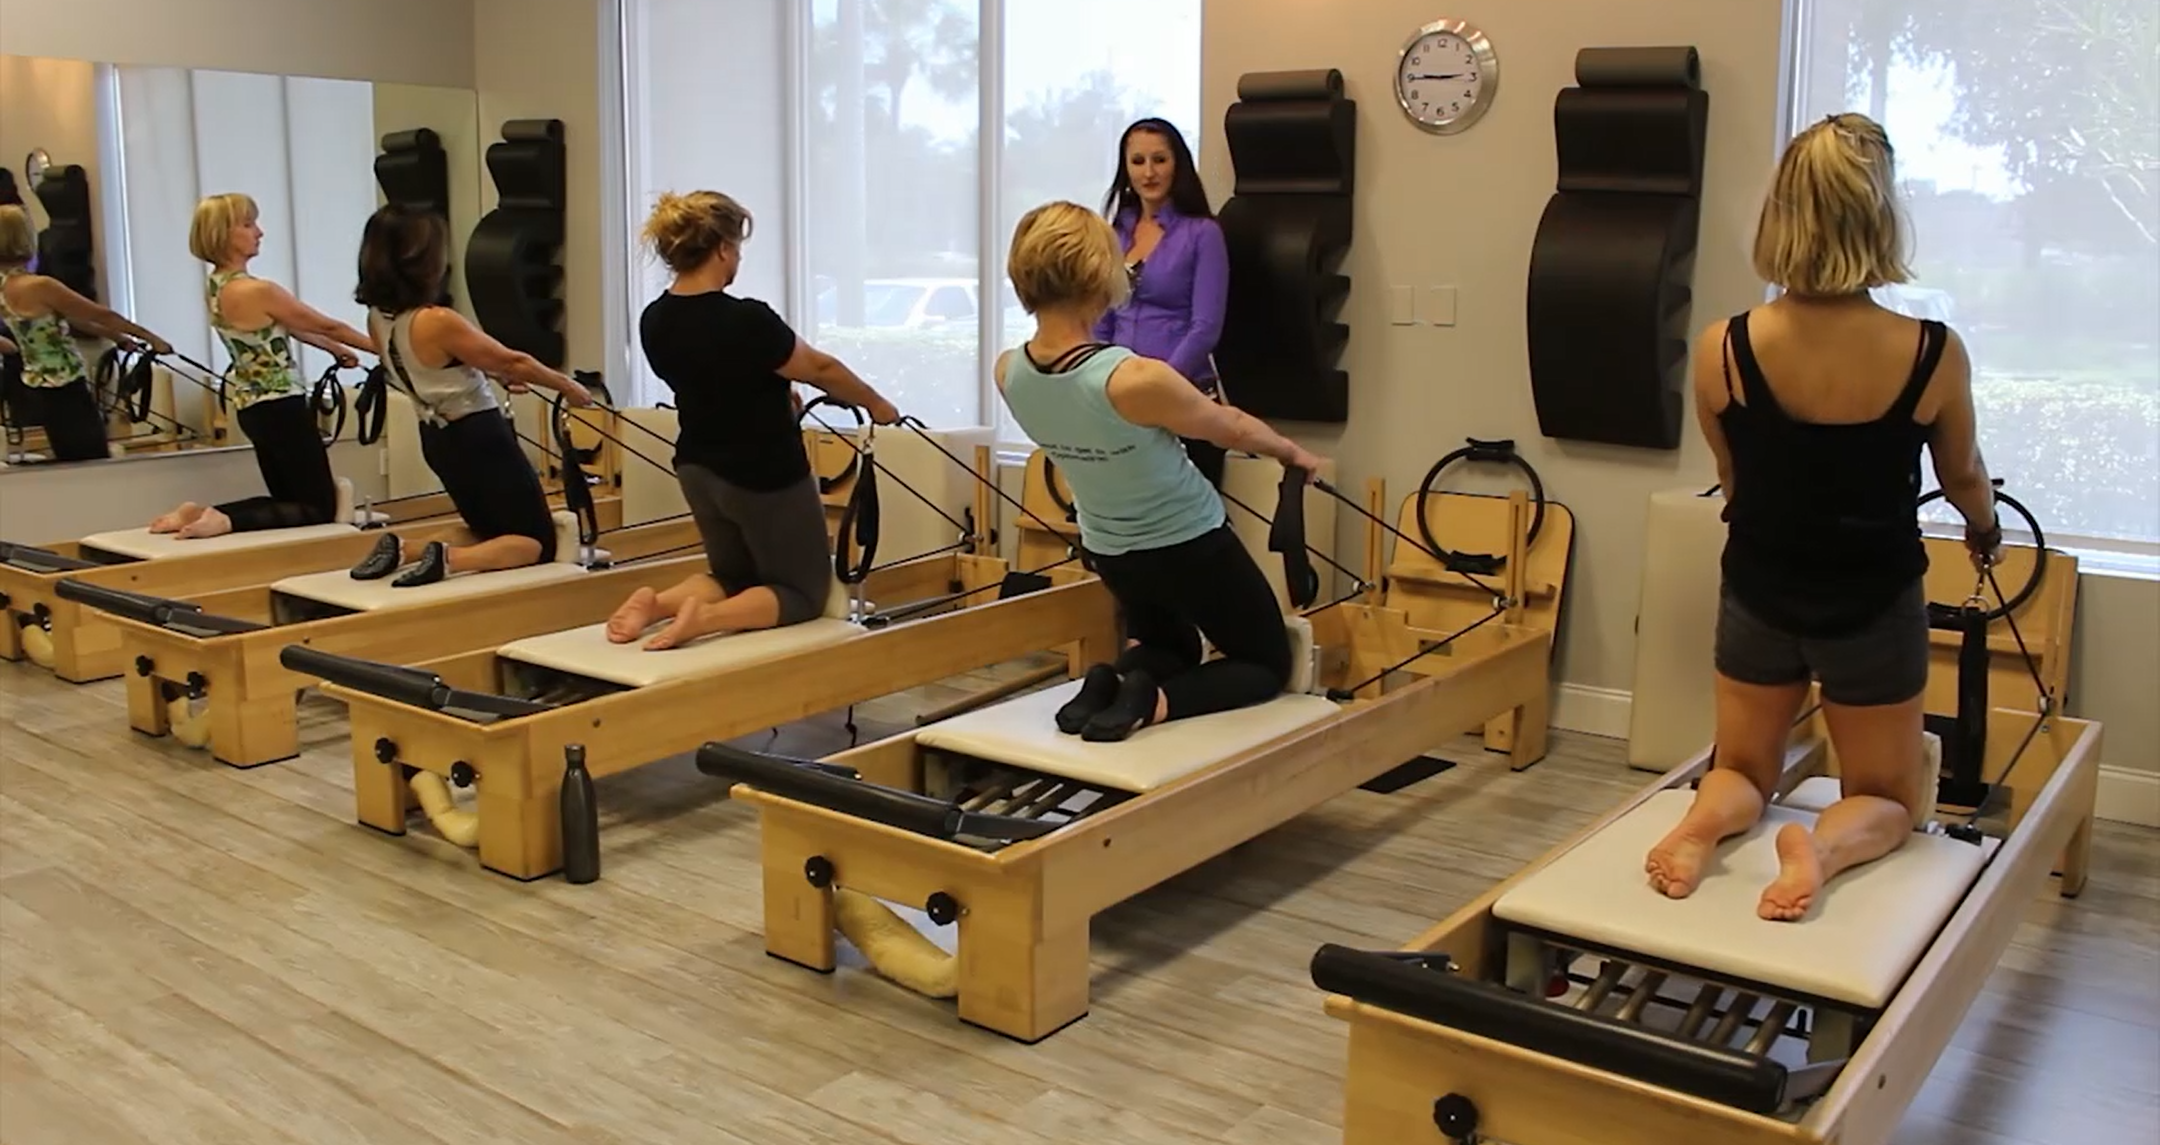 Reformer Jump Board Workout with Katie Thoms